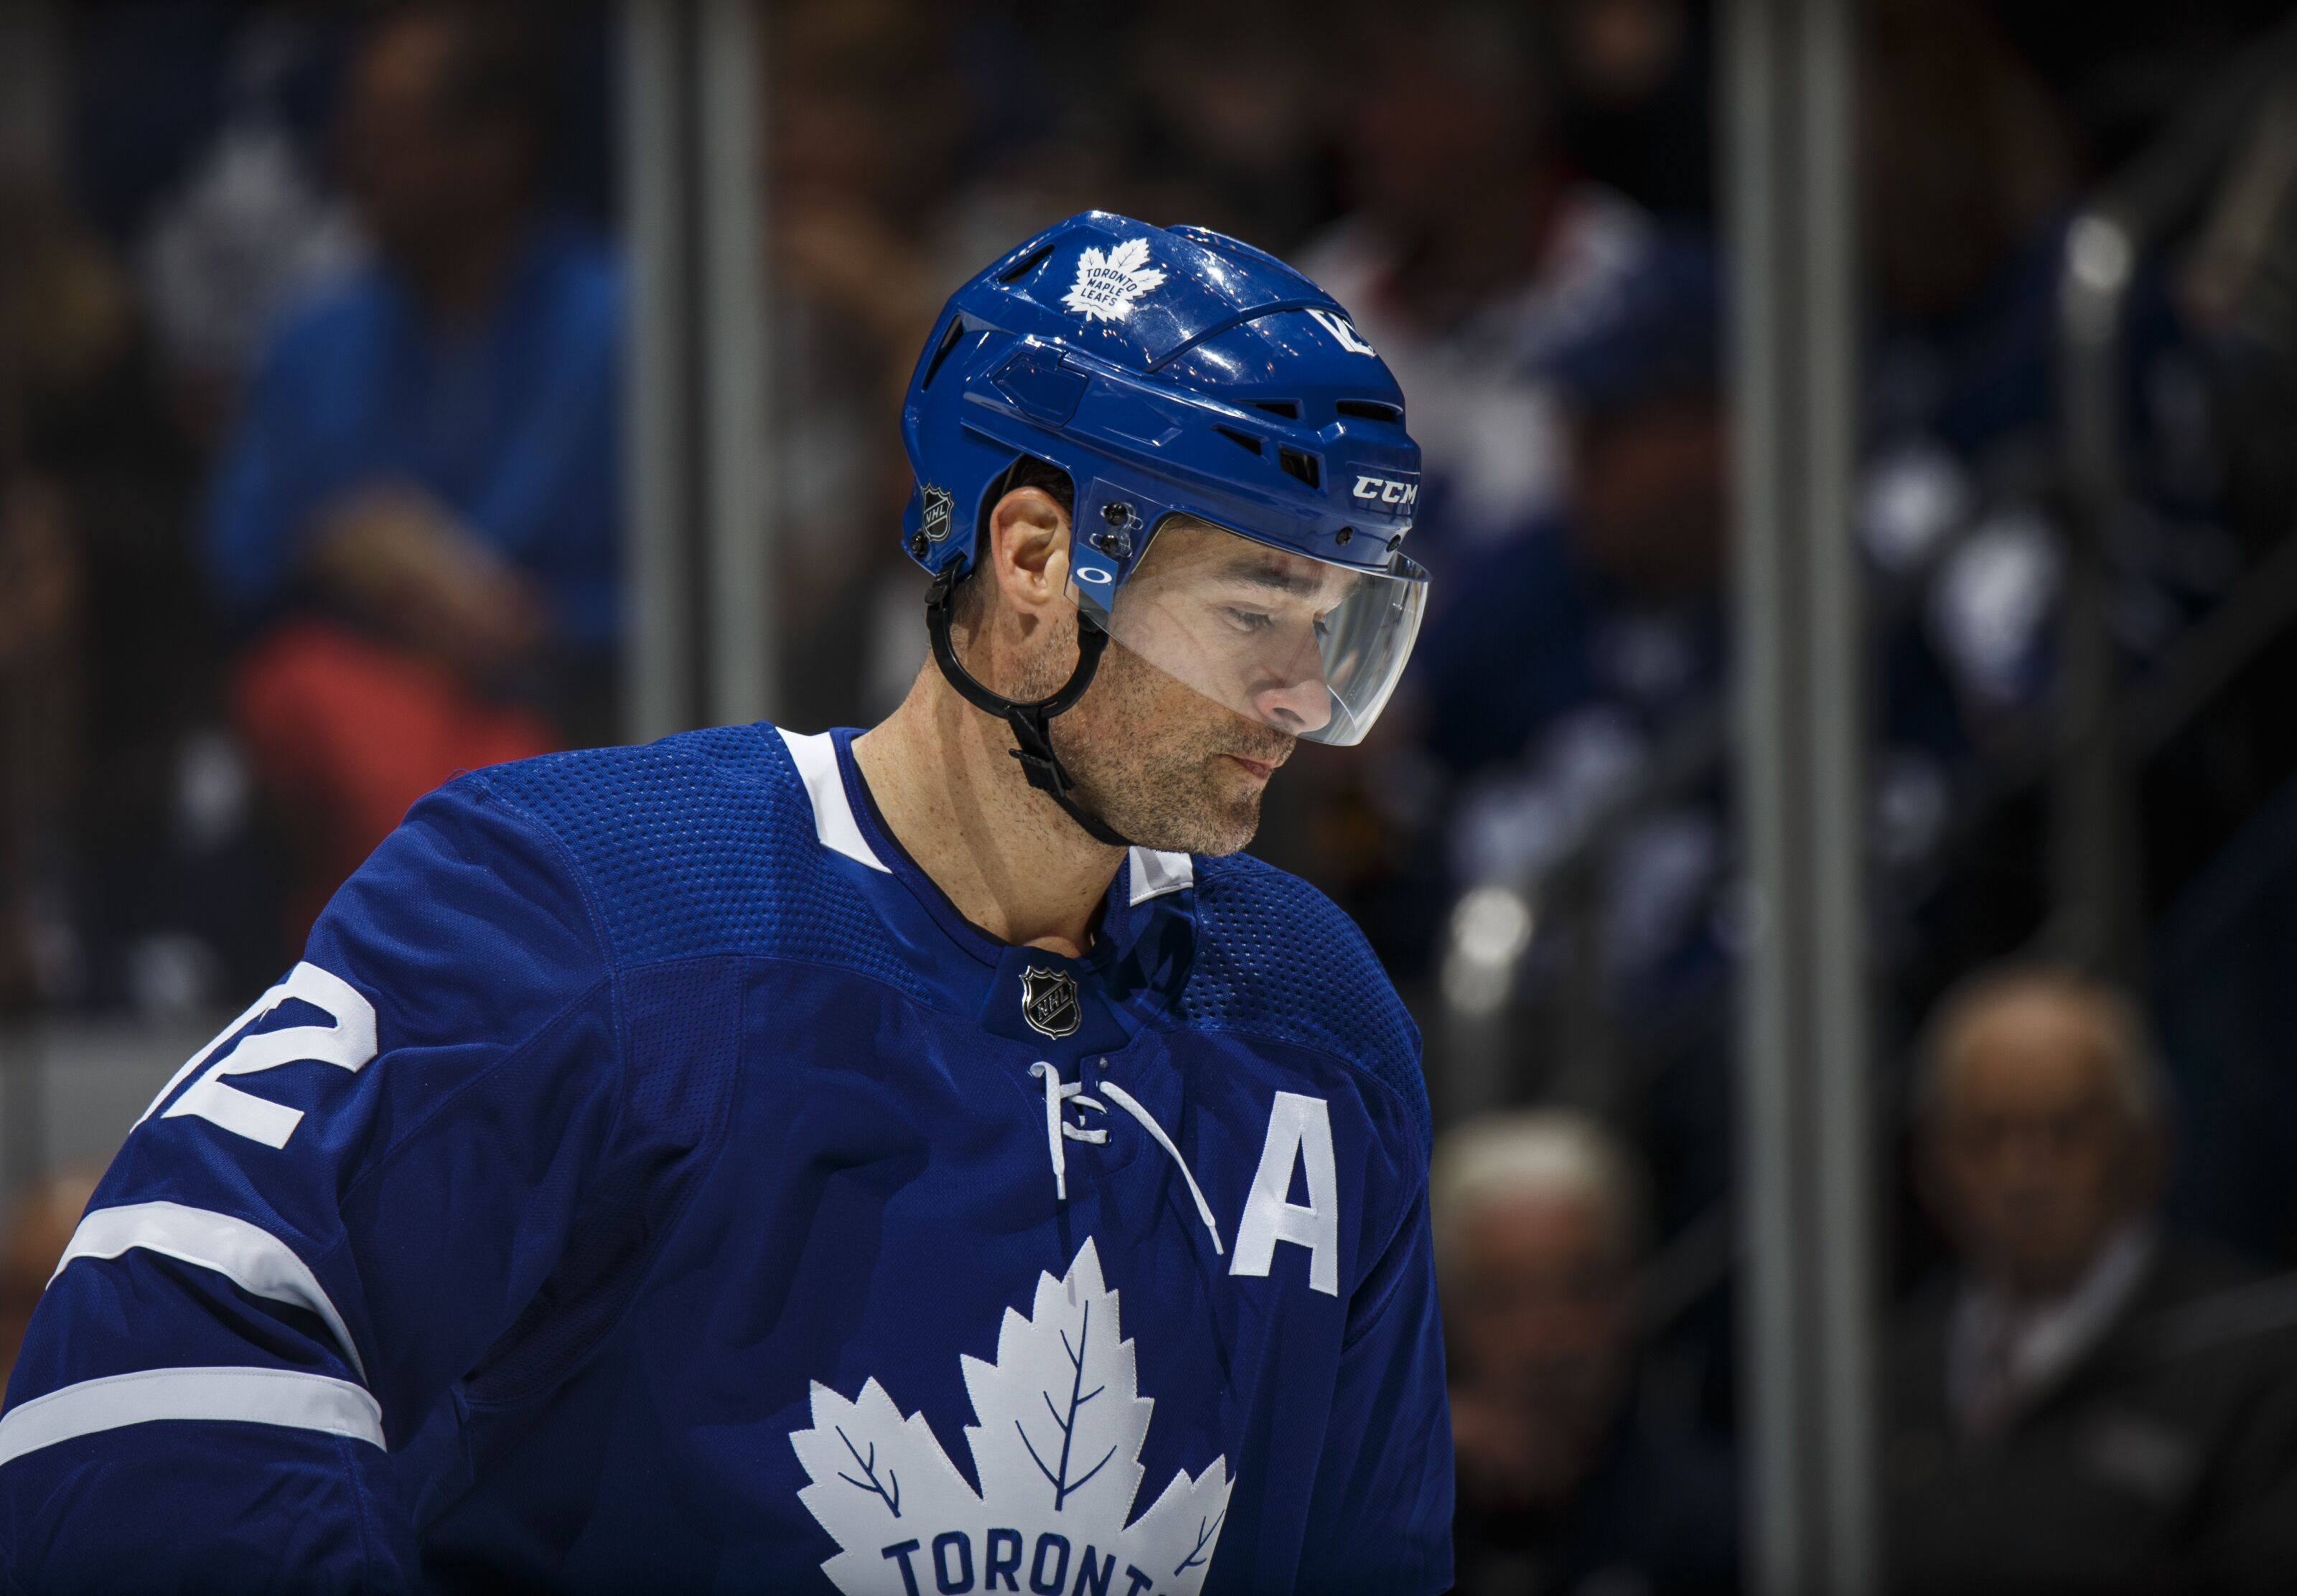 NHL trade rumors: 3 teams that should trade for Patrick Marleau